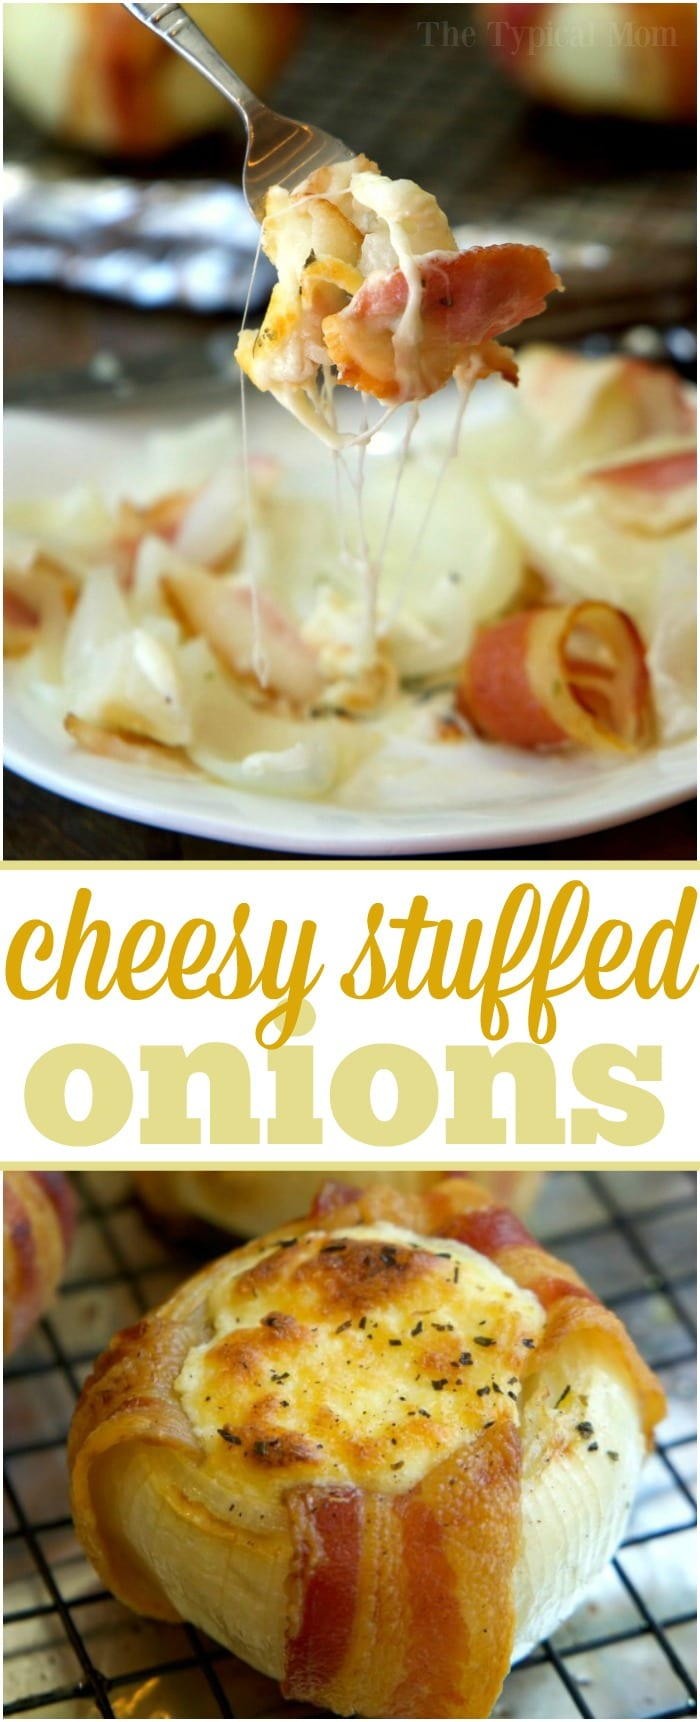 These mozzarella stuffed bacon wrapped onions are an amazing side dish or main course! Baked or grilled on the barbecue they are a sweet and savory dish with lots of cheese oozing out. Filled with cream cheese and mozzarella they were wonderful right out of the oven for lunch and a hit at our last barbecue. #cheese #mozzarella #bacon #onions #wrapped #grilled #baked #stuffed